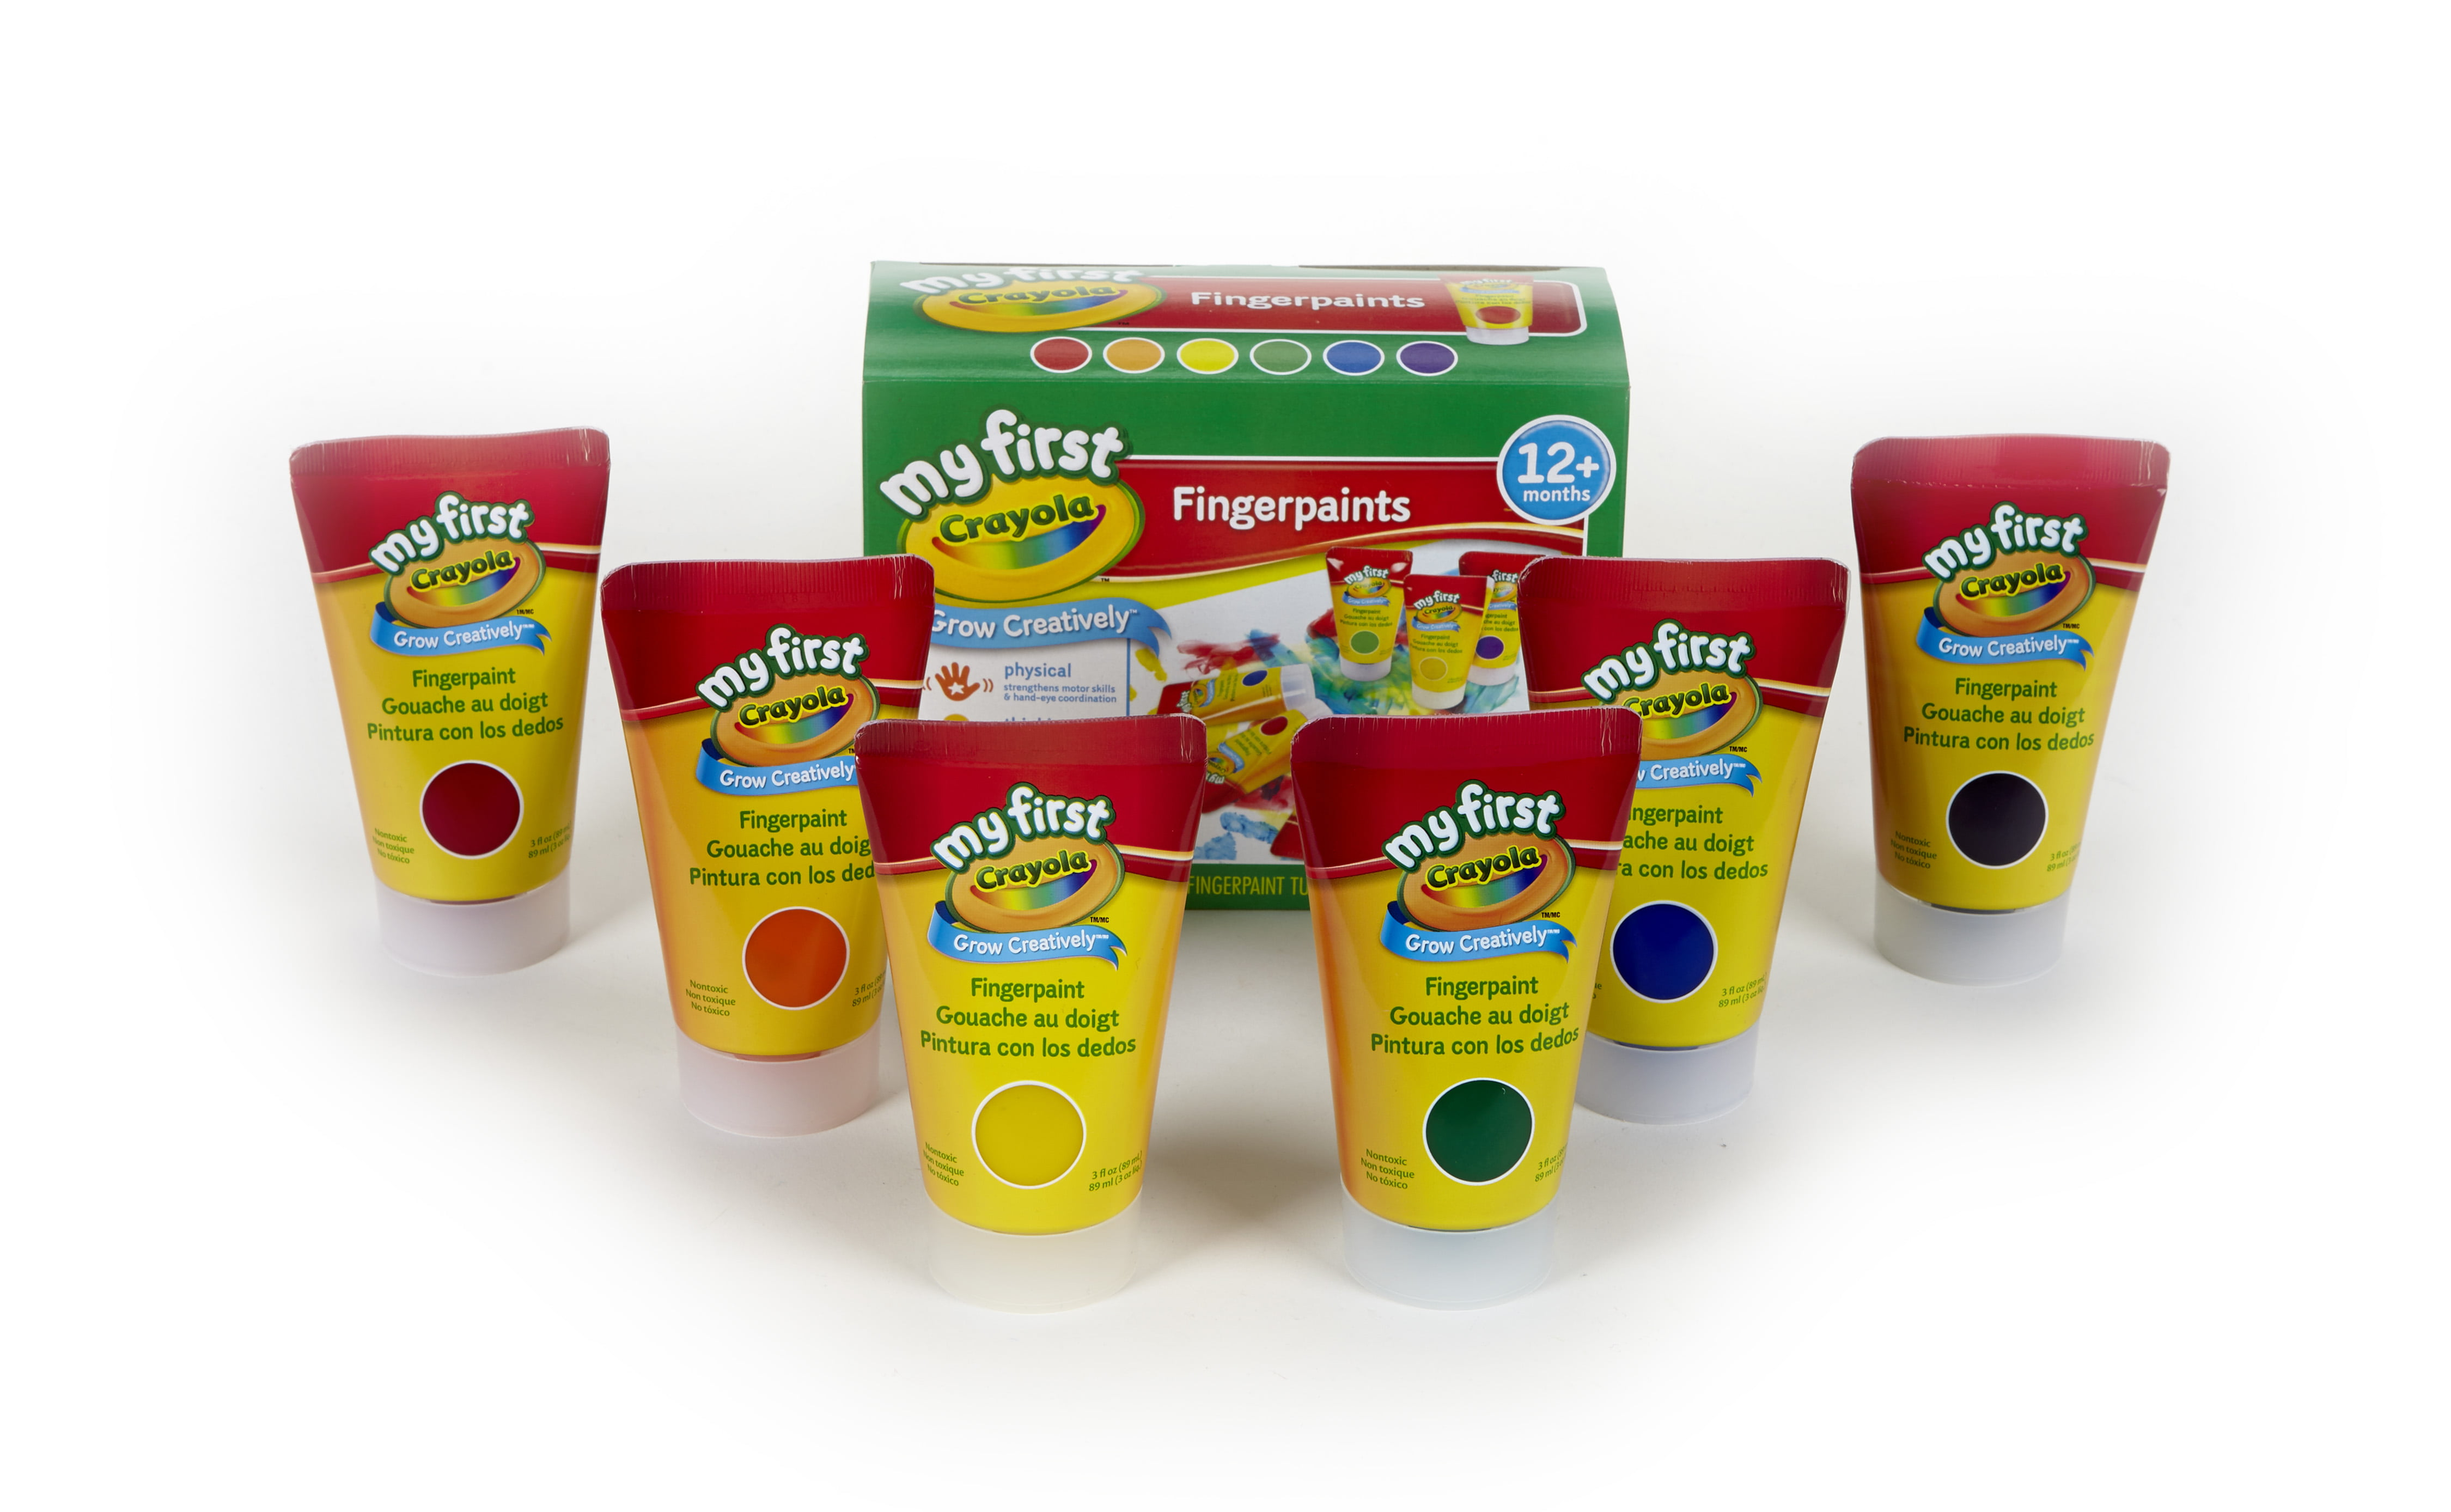 Crayola; My First Crayola; Fingerpaint Kit; Art Tools; 6 Different Colored Tubes of Paint;... by Crayola